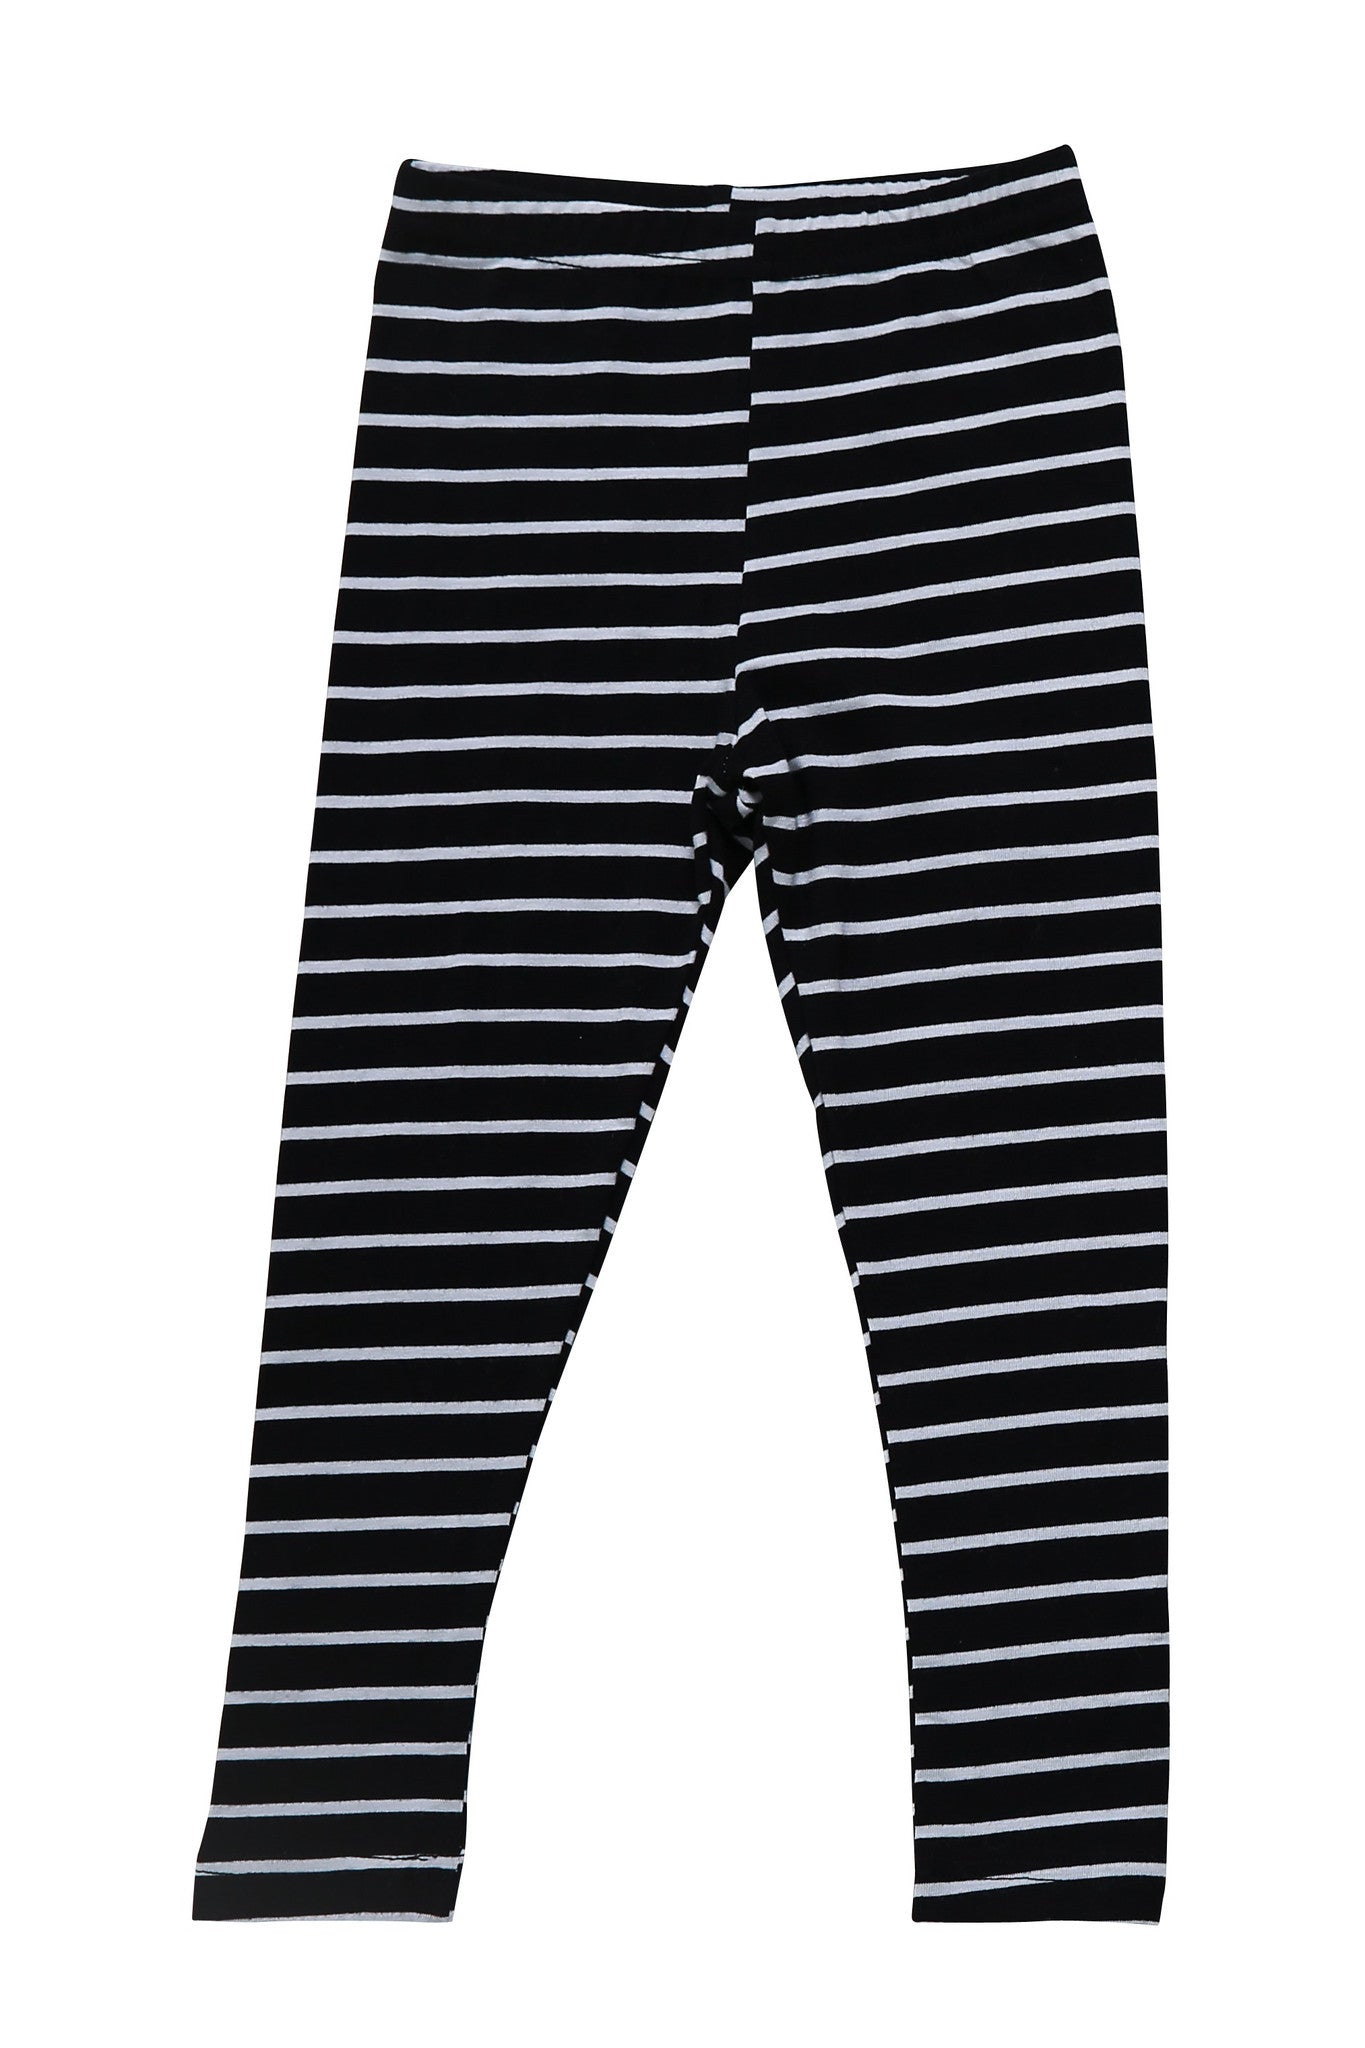 Leggings - Stripy White And Black Leggings